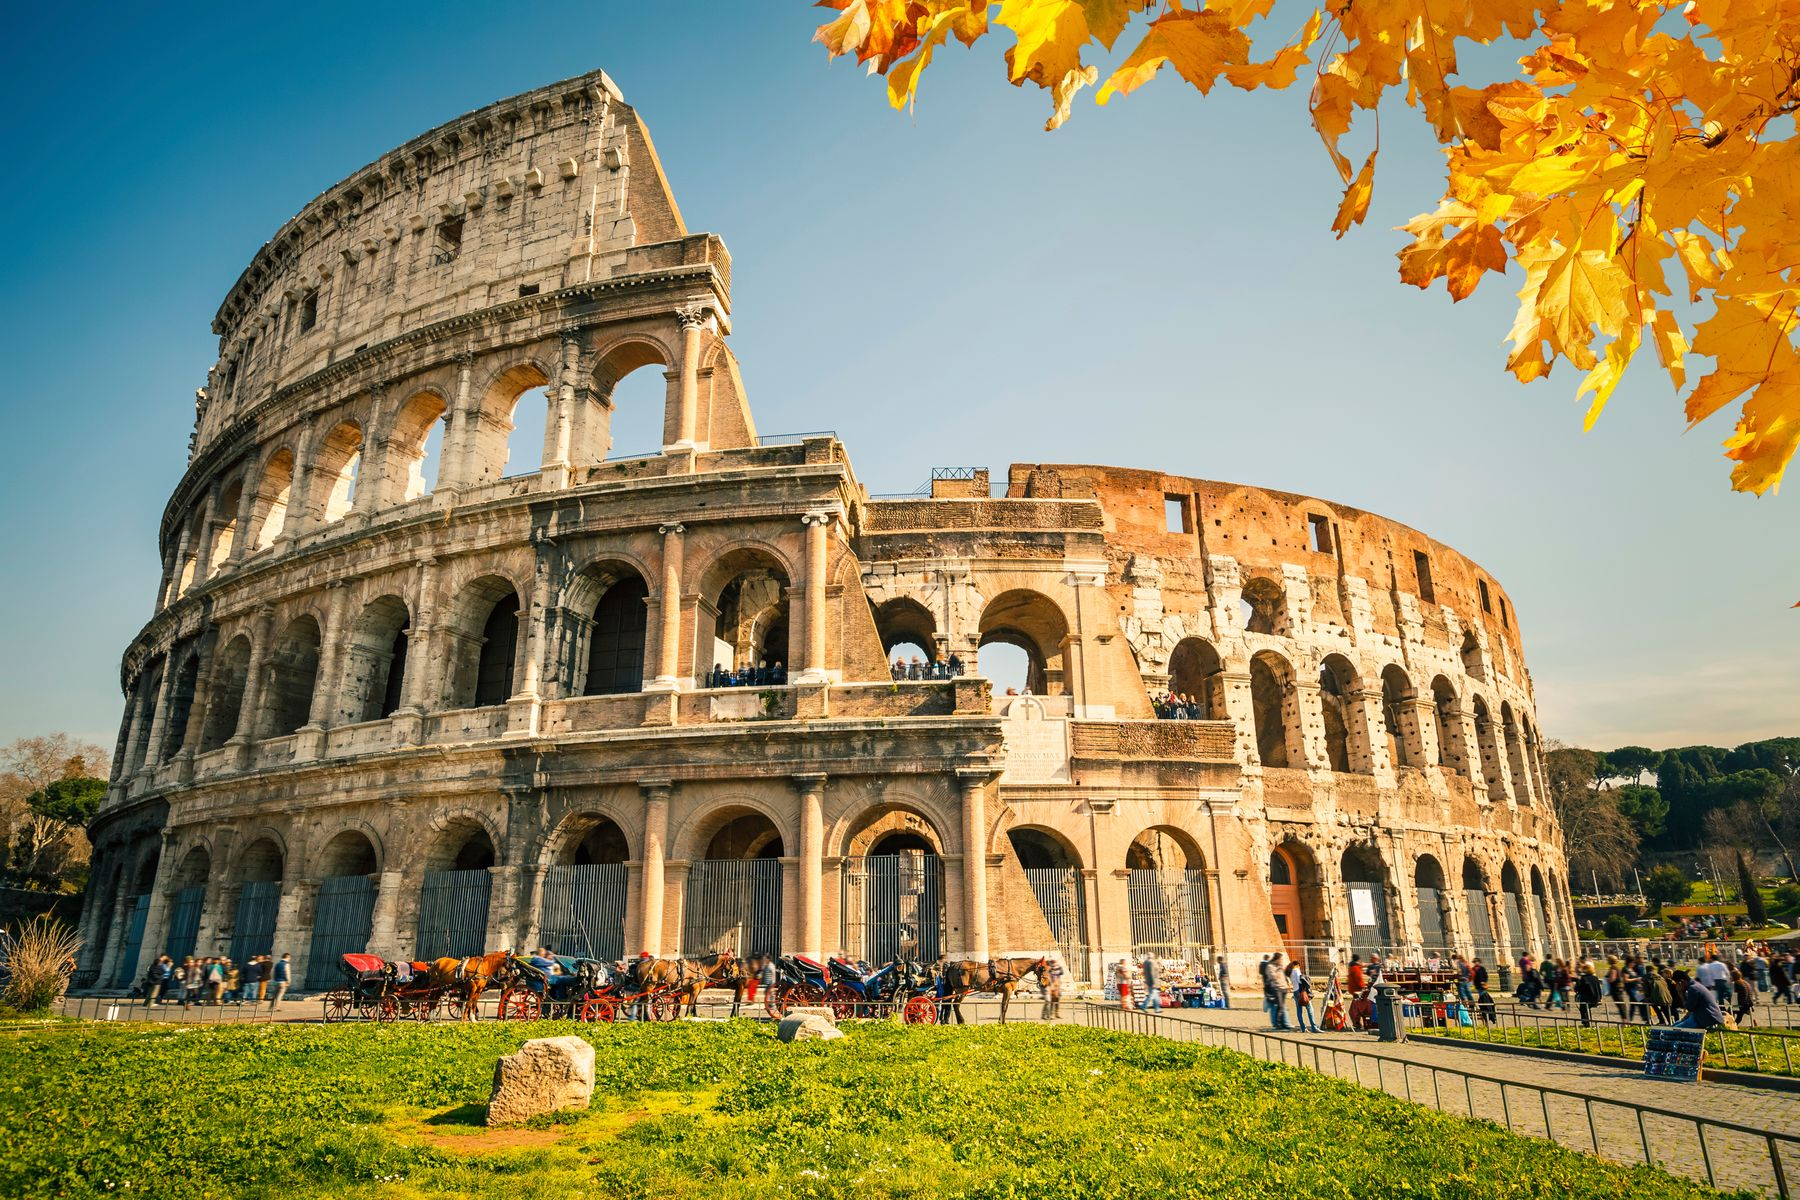 The Colloseum in Rome, Italy part of culture podcast